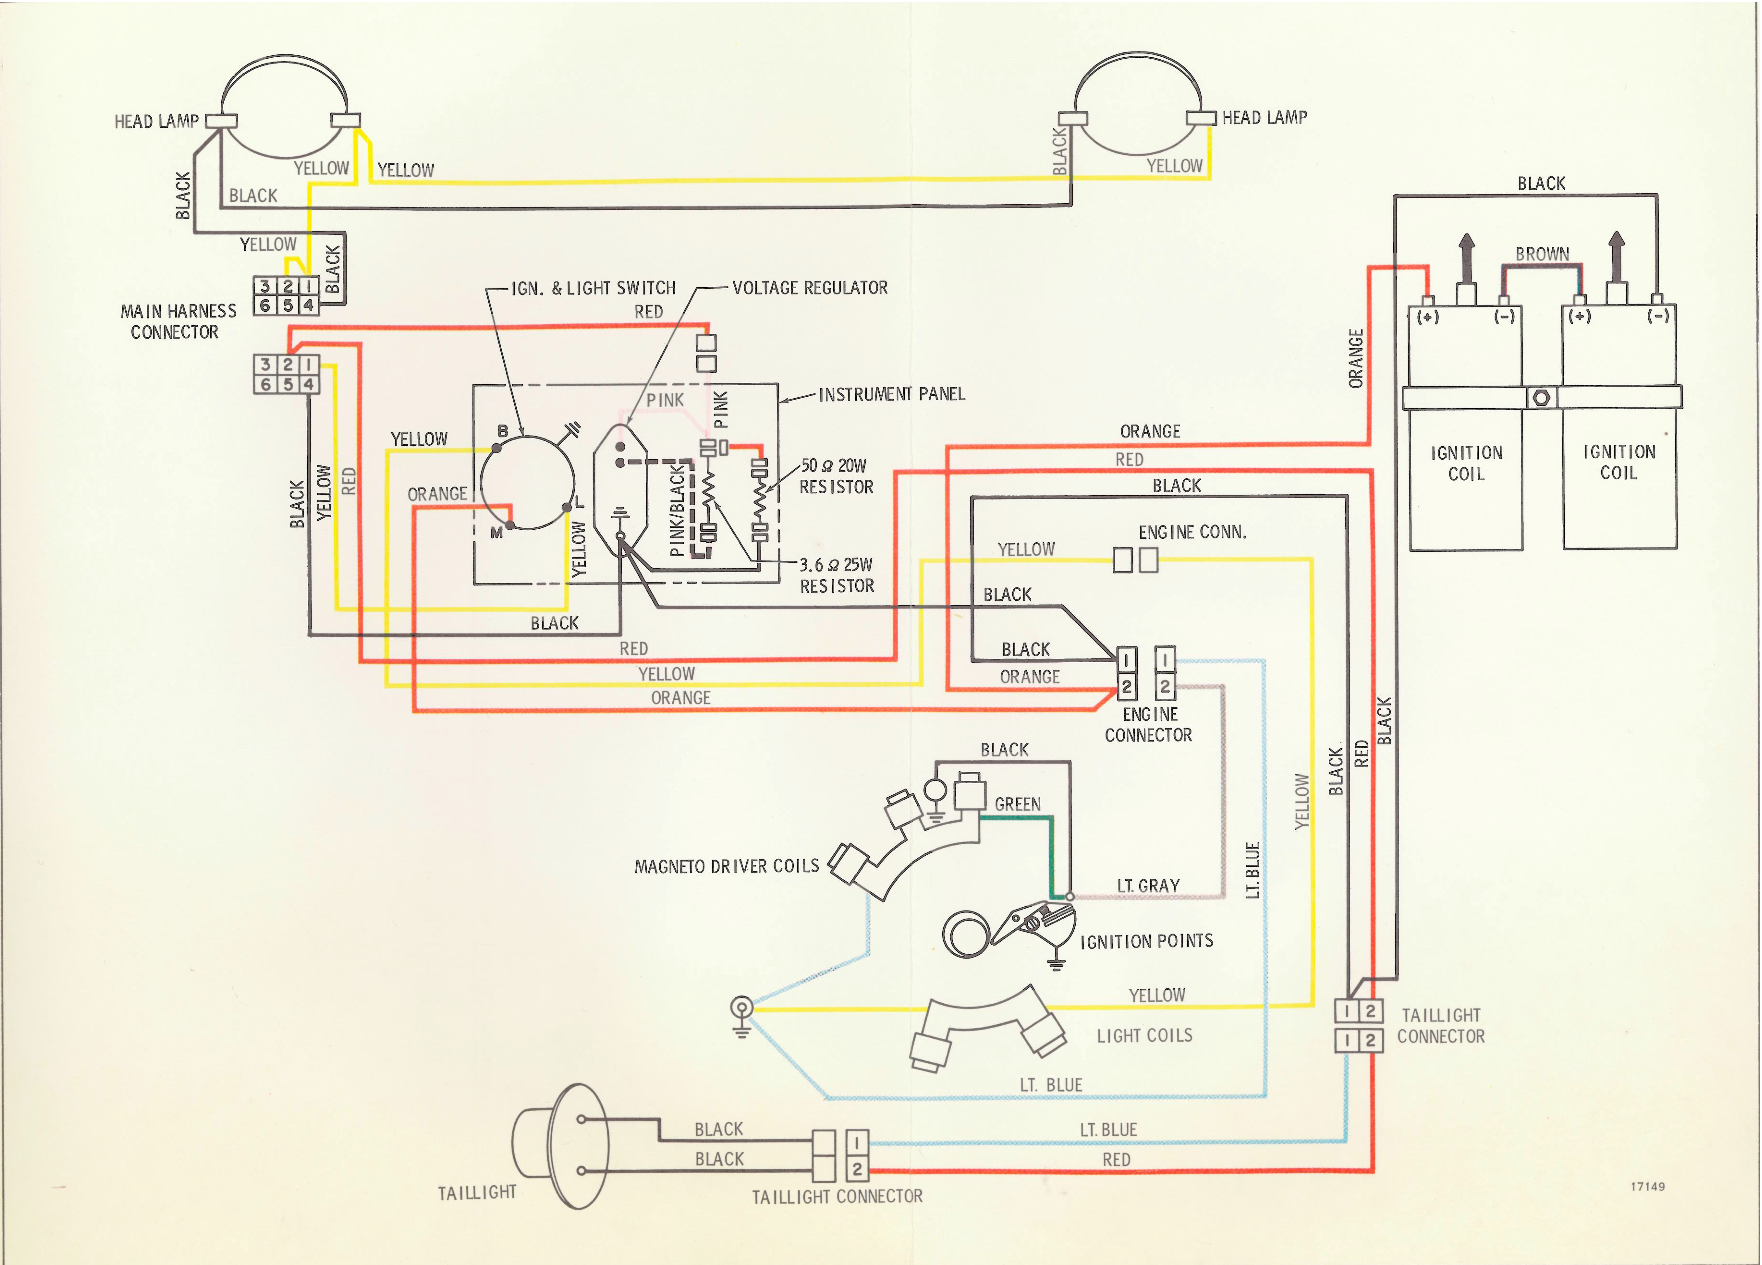 1971_Bobcat evinrude 1972 evinrude 65 hp wiring diagram at aneh.co